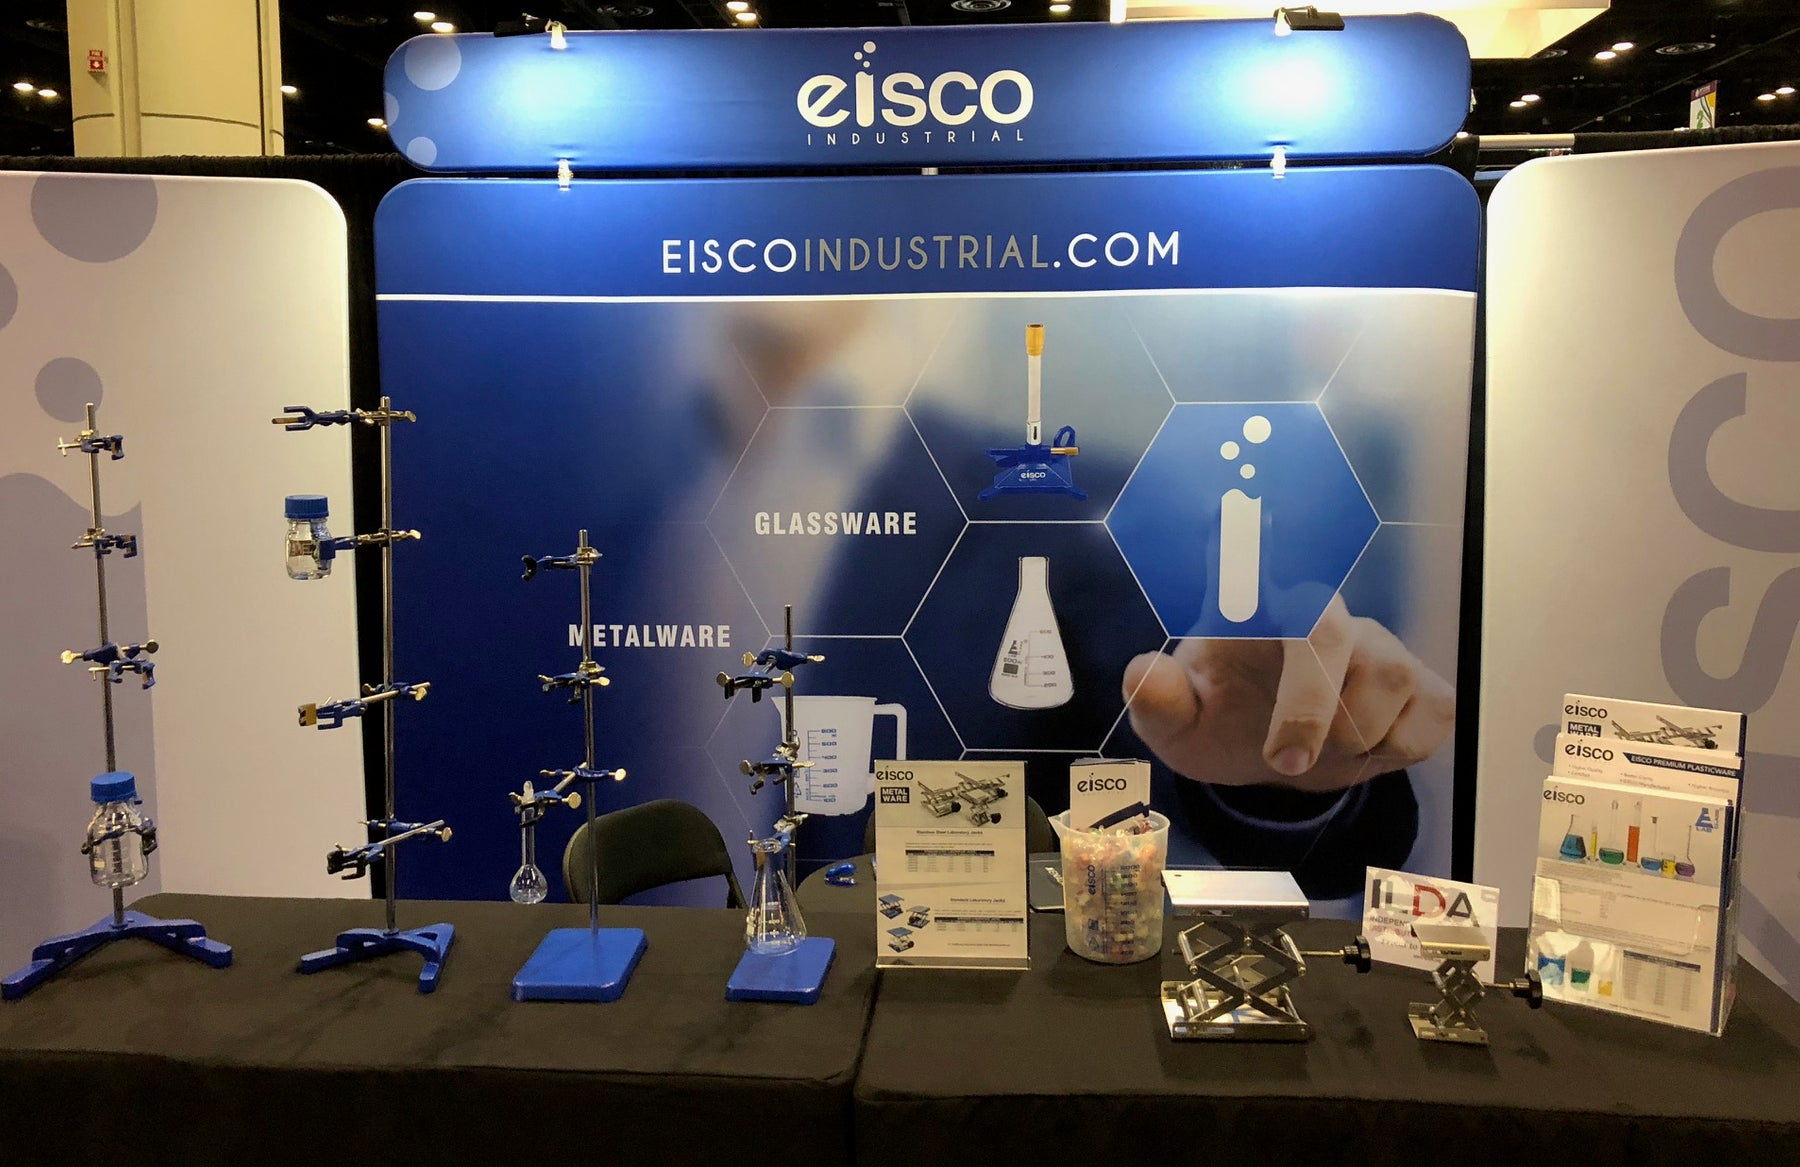 Eisco Industrial launch at PITTCON 2018